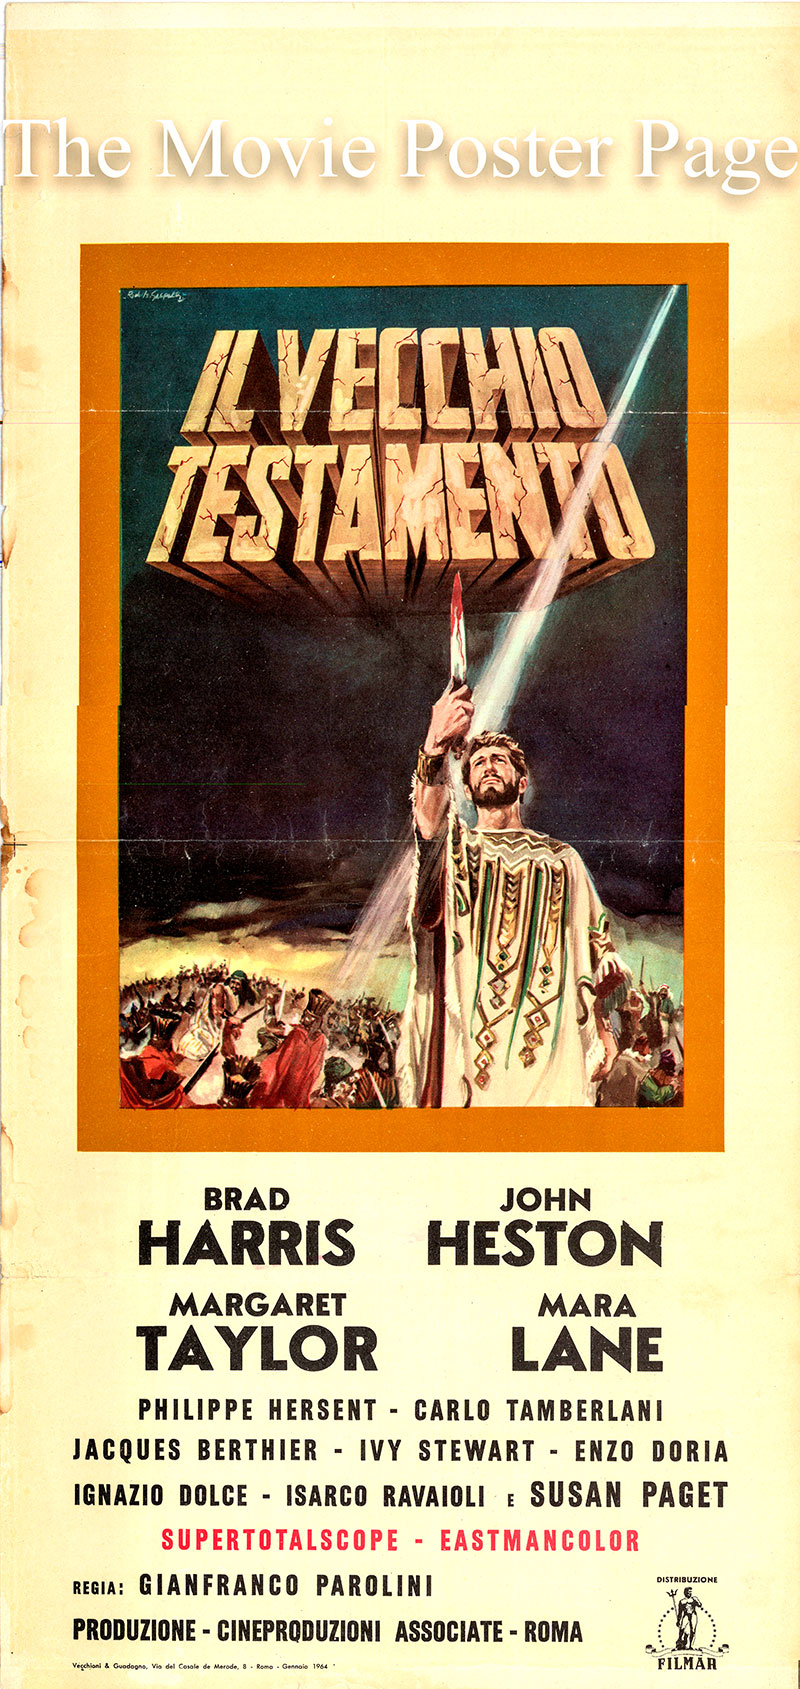 Pictured is an Italian locandina poster for a 1964 rerelease of the 1962 Gianfranco Parolini film The Old Testament starring Brad Harris as Simone.